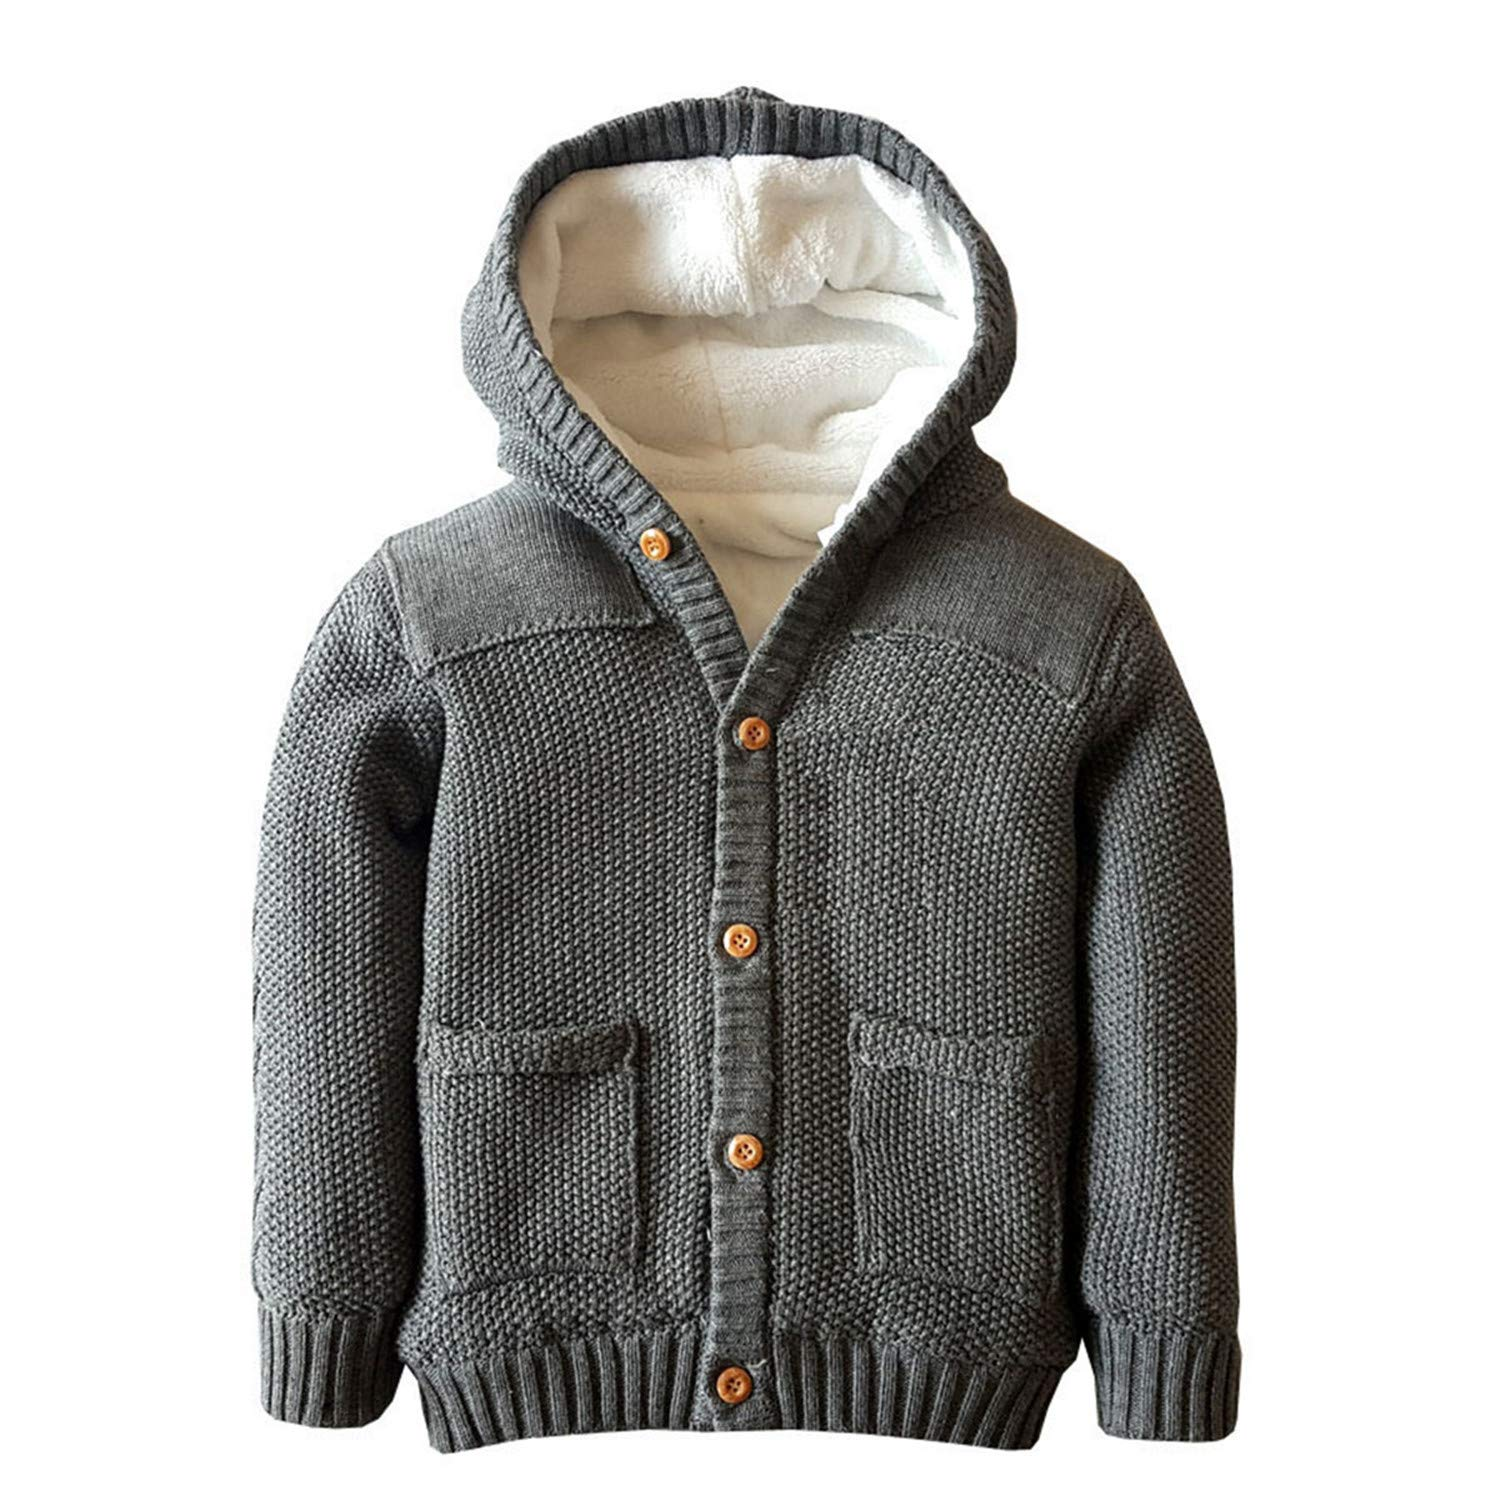 Baby Boys Hoodies Sweater Toddler Girls Knit Cardigan Outerwear Gray by Dealone